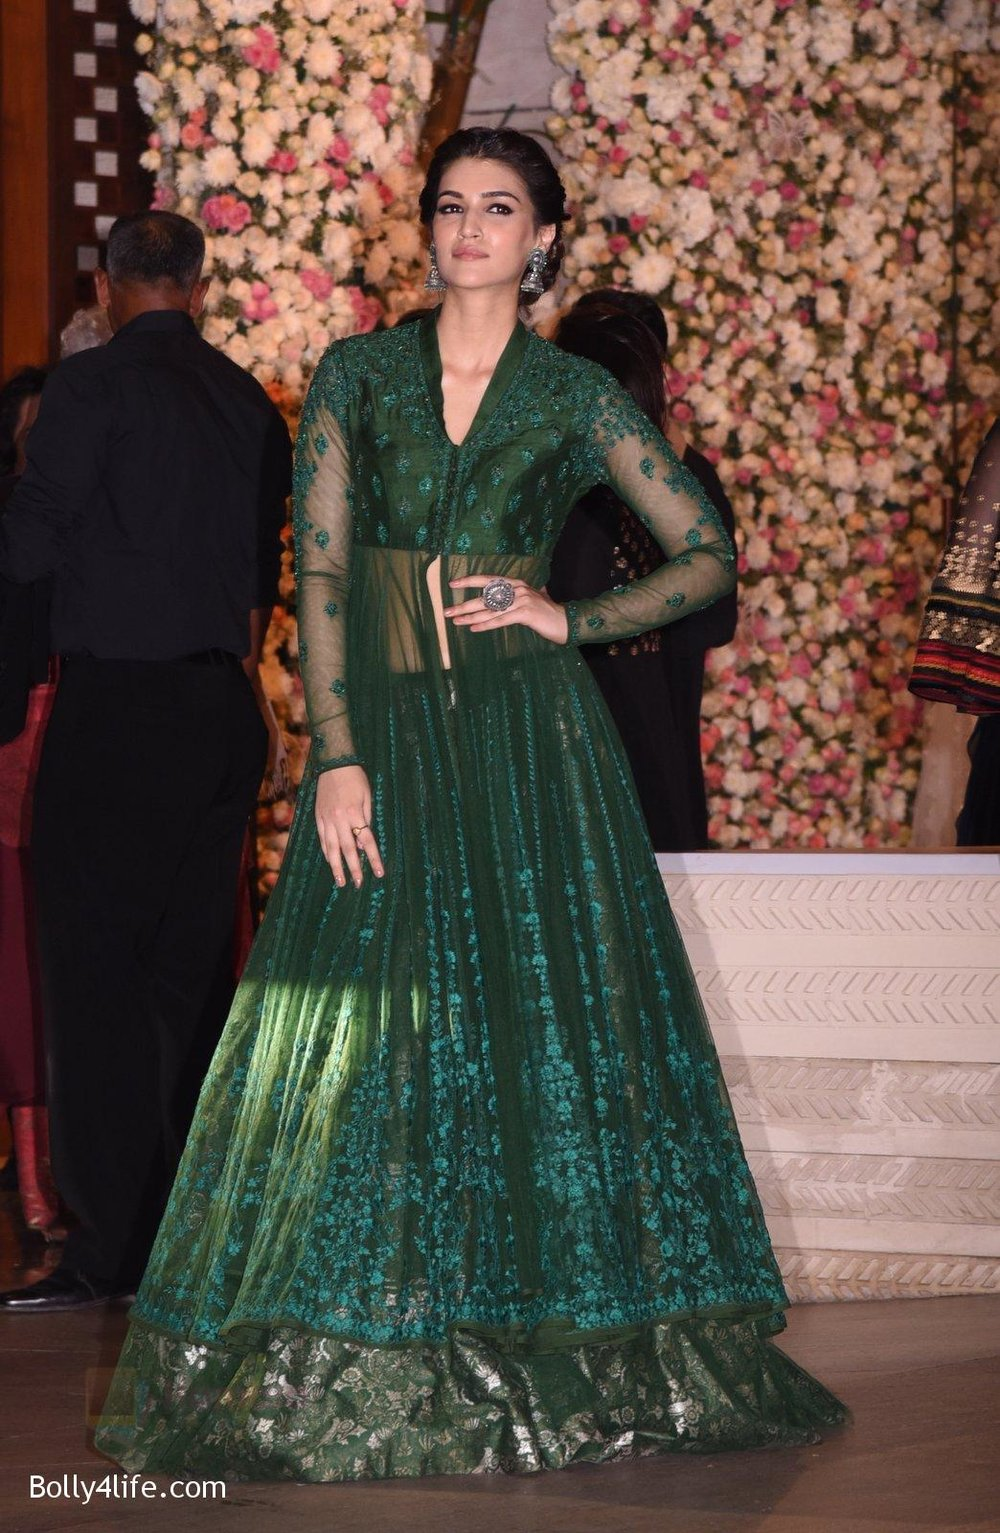 Kriti-Sanon-at-the-Ambanis-wedding-party-of-their-niece-Isheta-Salgaoncar-2.jpg